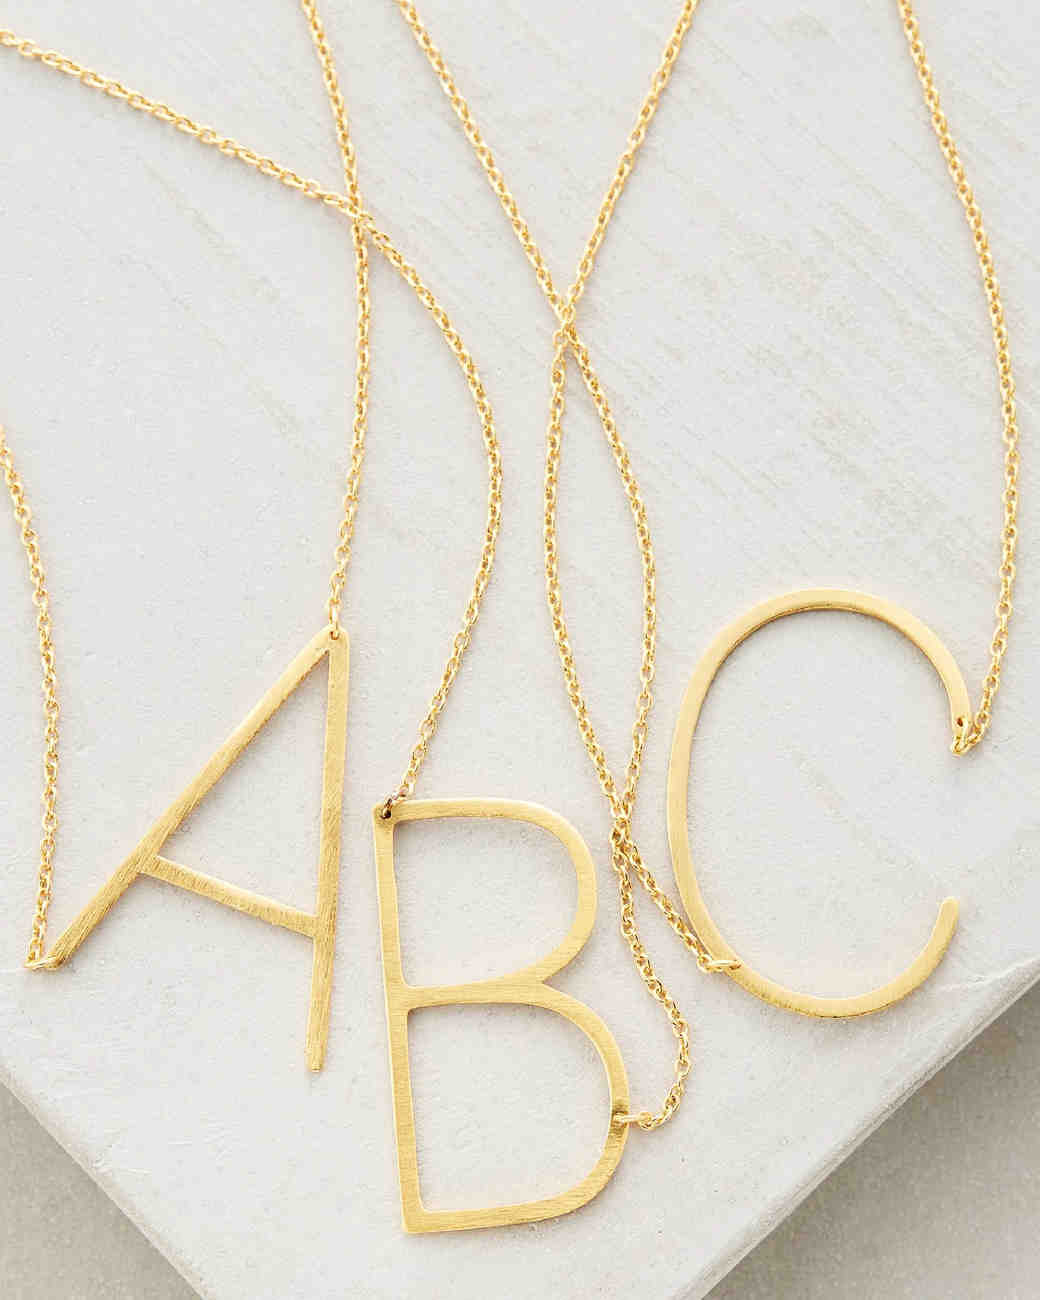 bridal-party-gifts-large-initial-necklace-0416.jpg